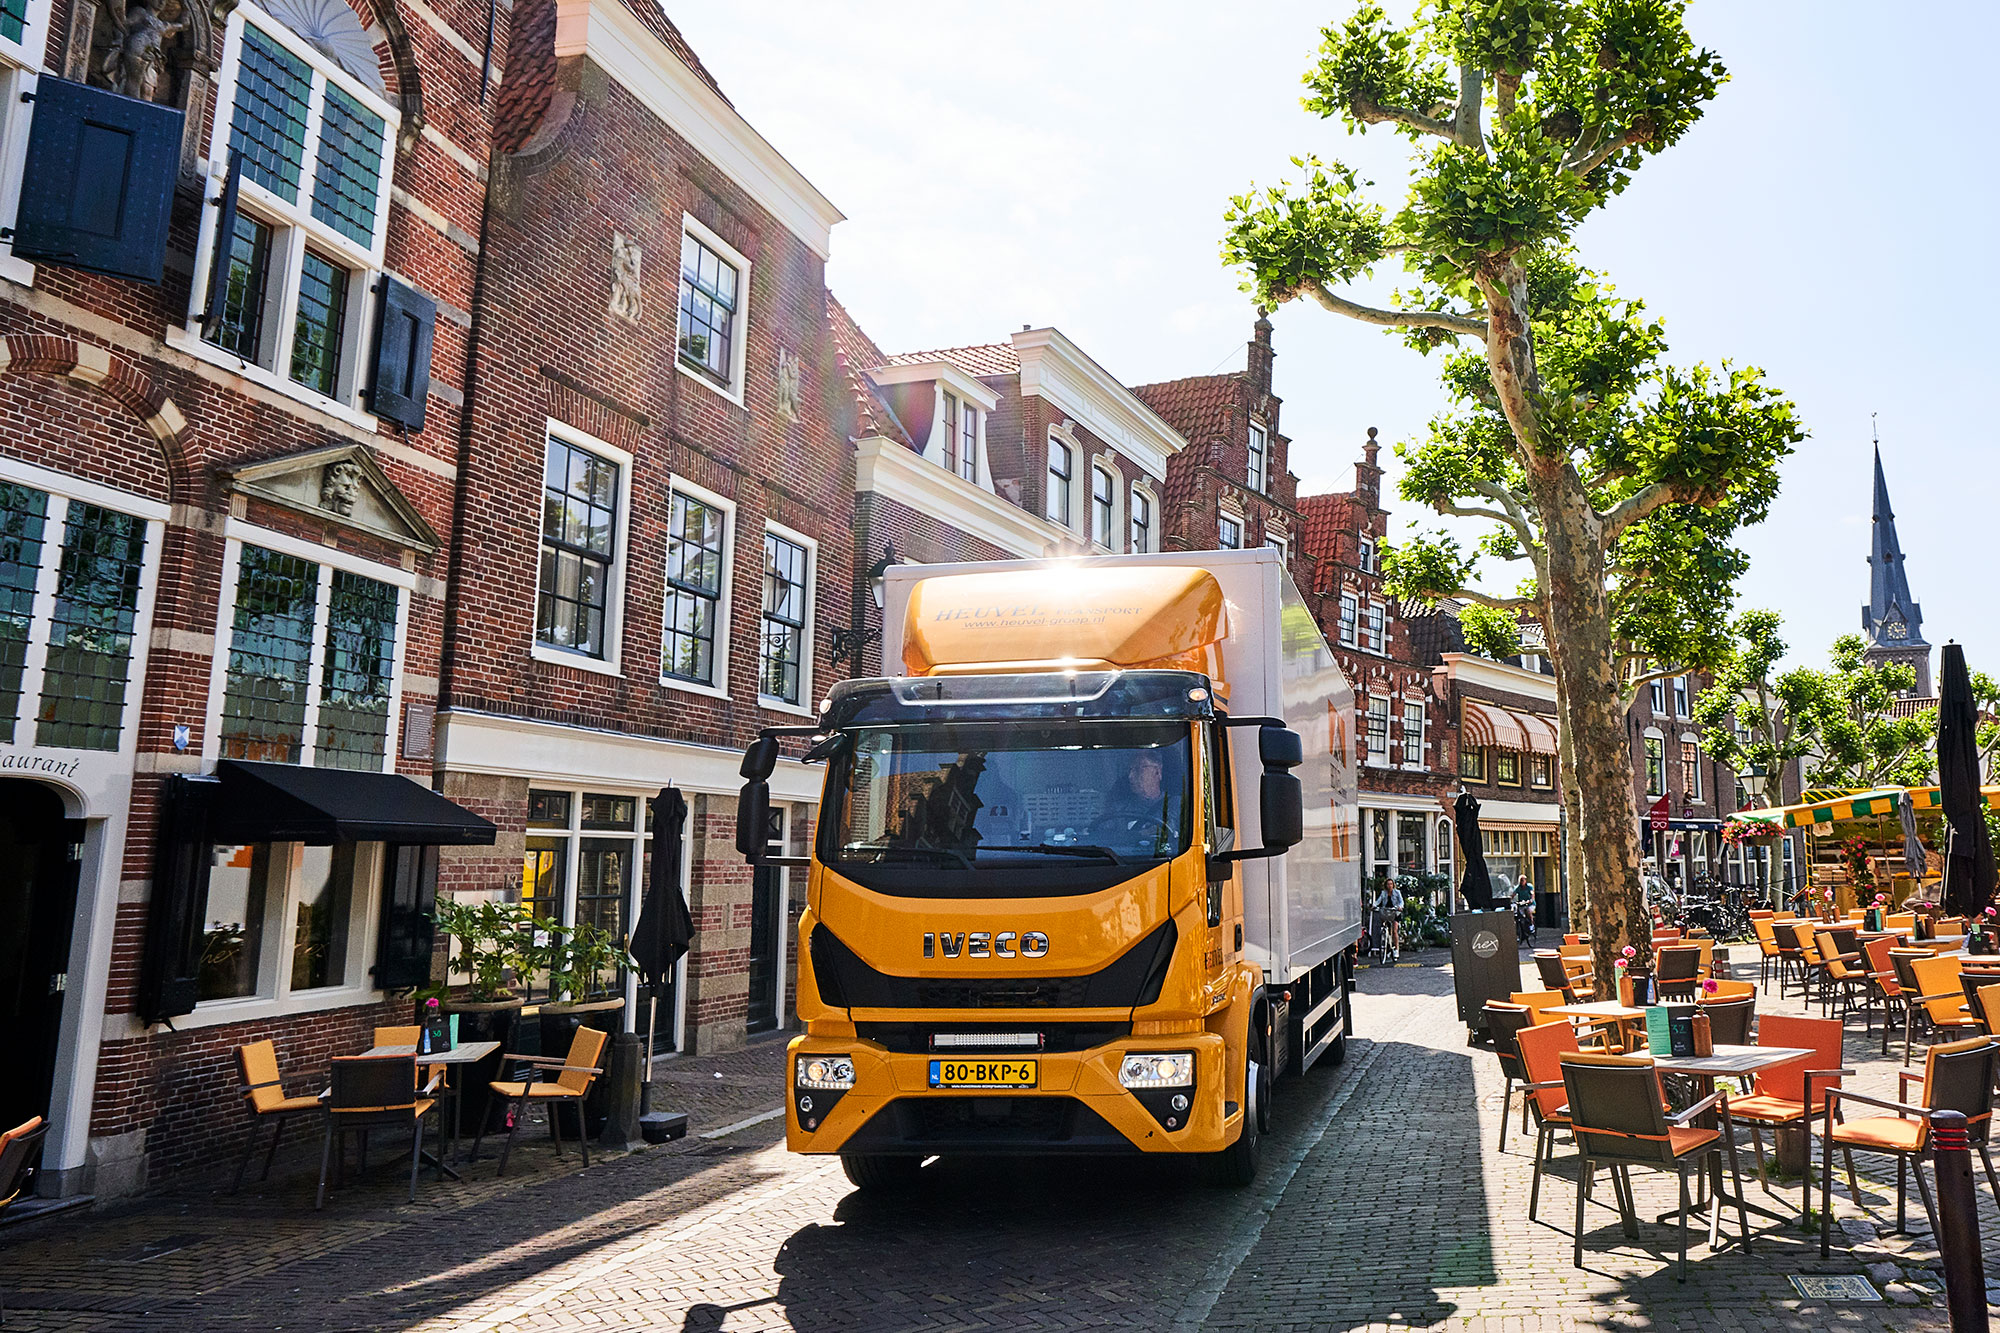 oudewater heuvel transport stad